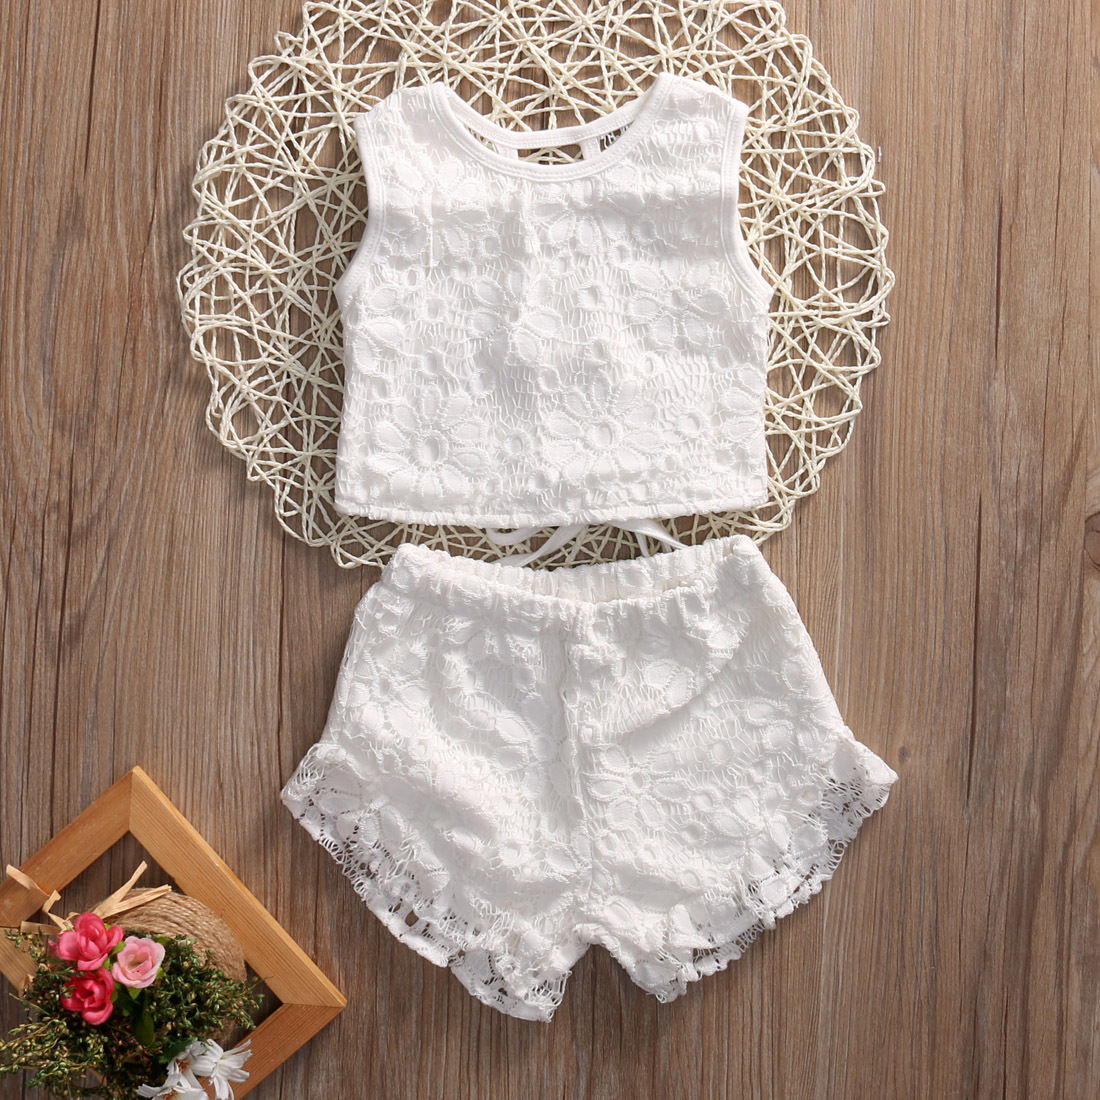 Toddler Baby Girls Clothes Kids Summer Floral Lace Sleeveless Tops Shirt Shorts Outfits Set girl Clothing